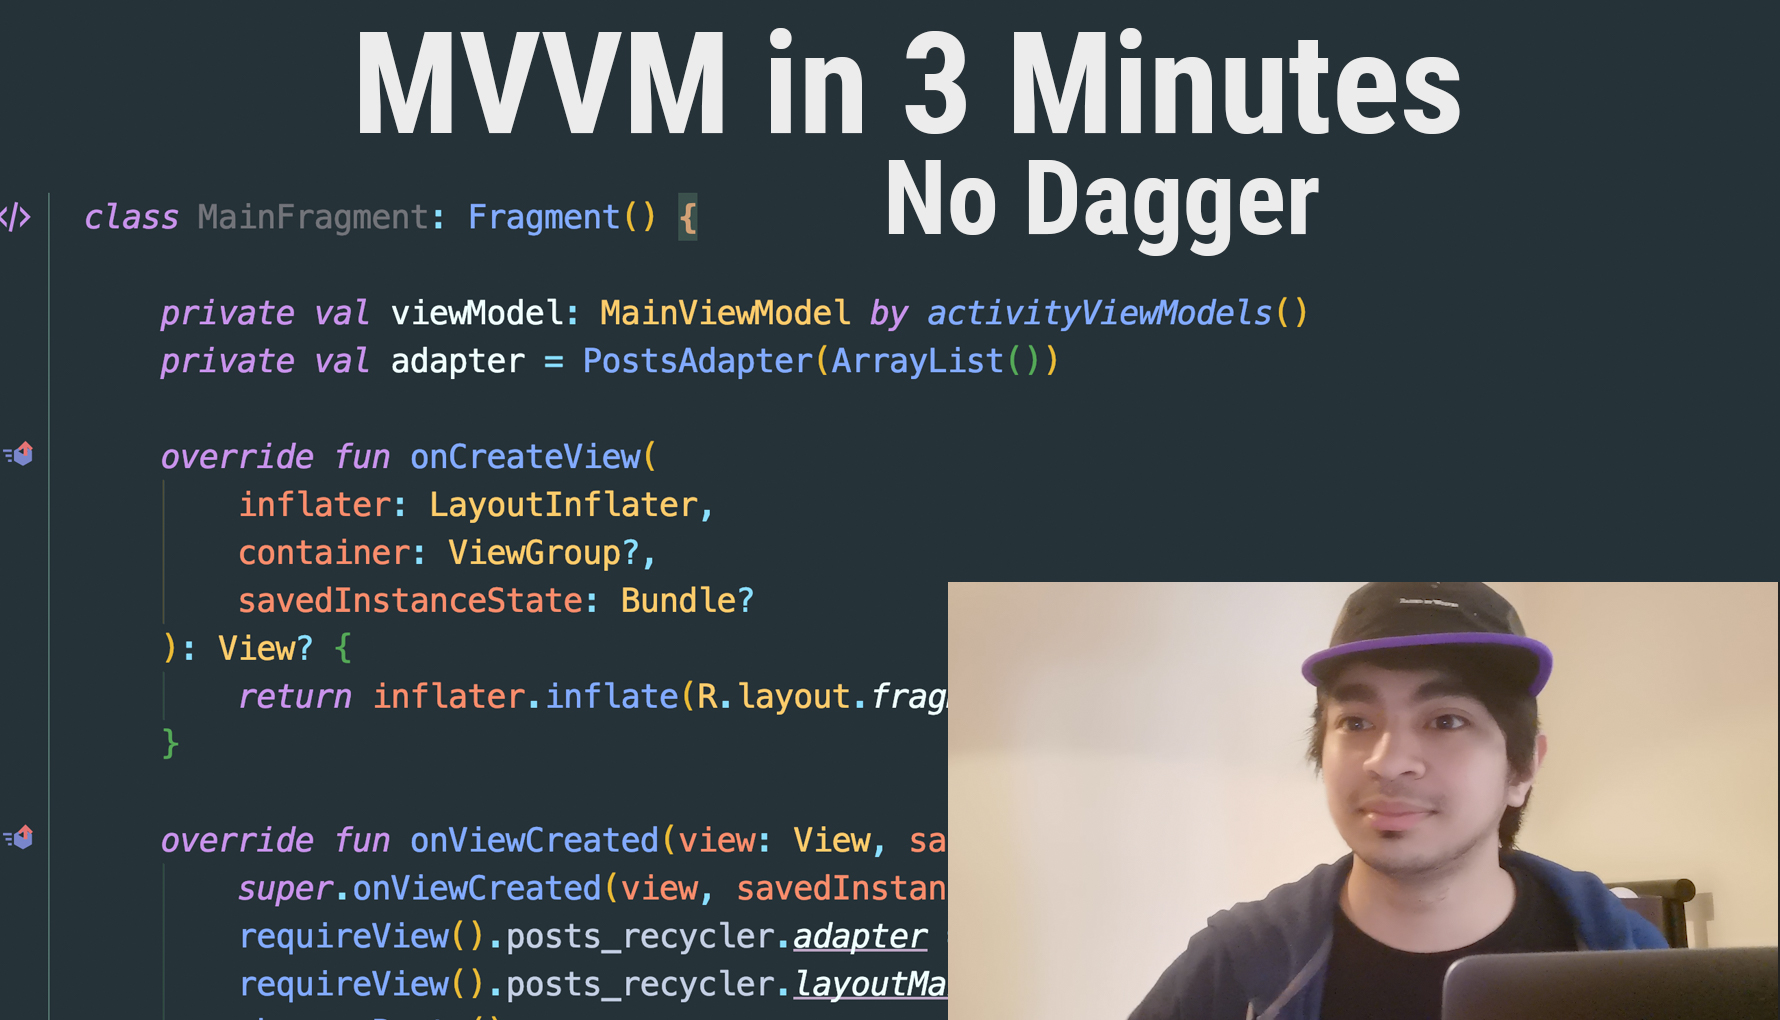 (Video) Android MVVM Tutorial in 3 Minutes